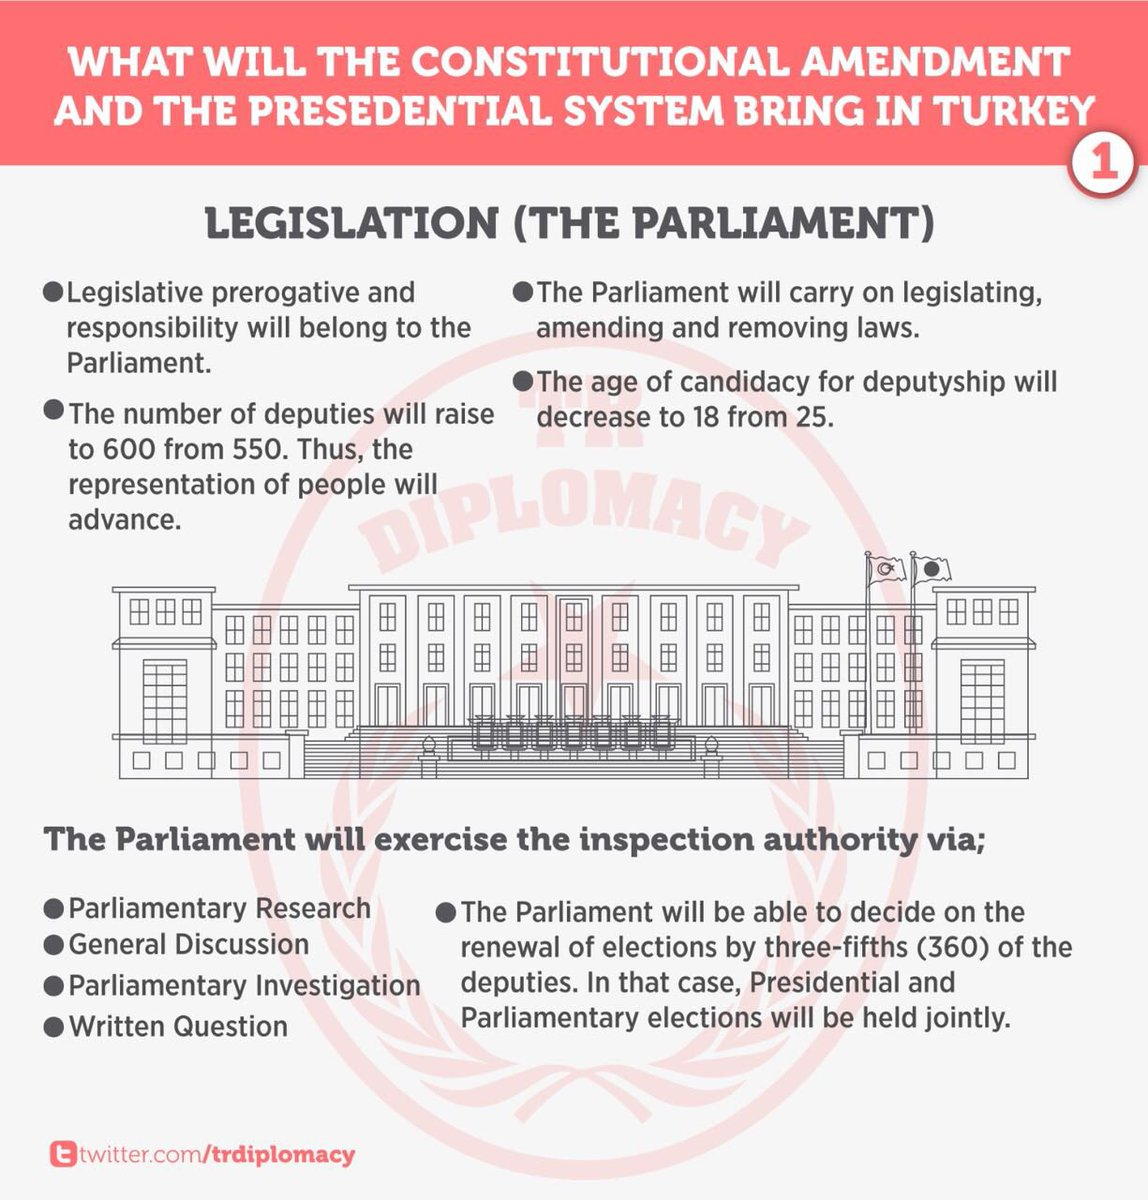 What will constitutional amendment and Presidential System bring?